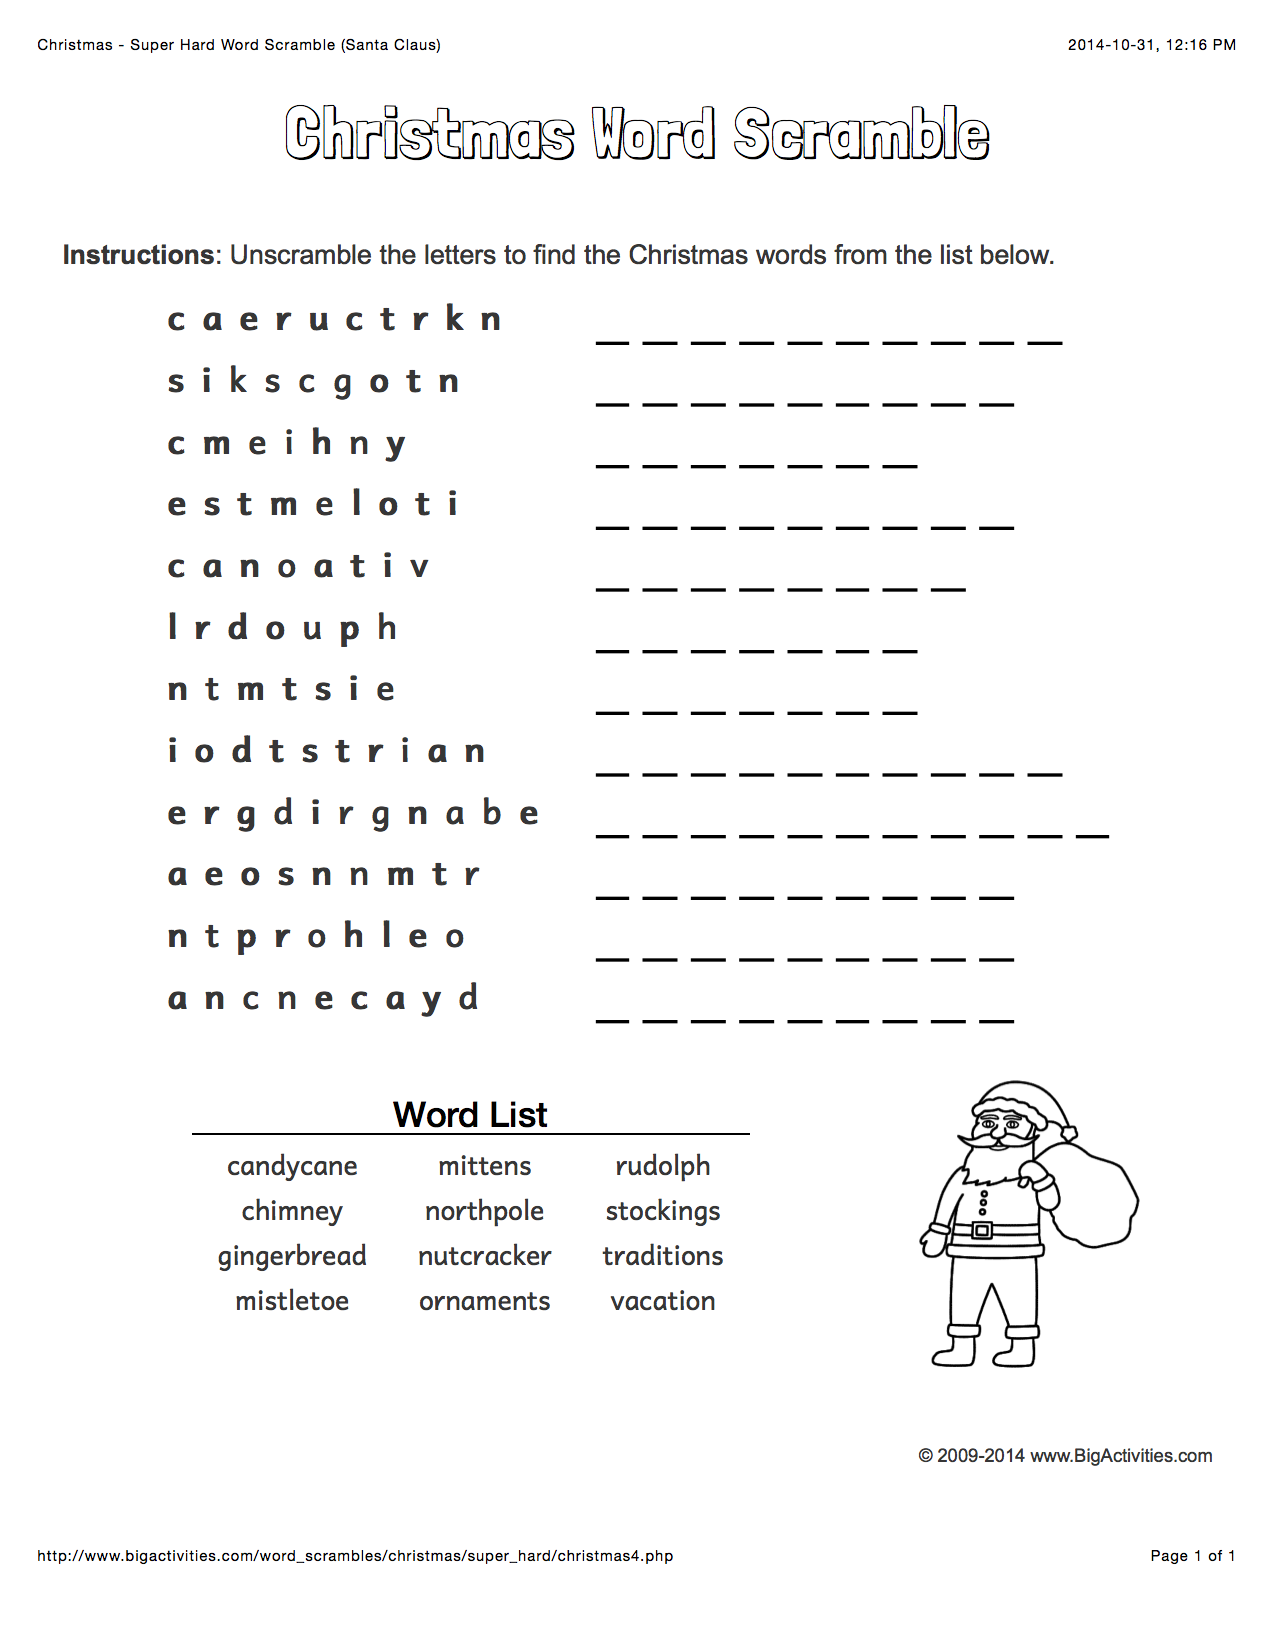 Christmas Word Scramble With Santa Claus 4 Levels Of Difficulty Scrambled Words Change Each